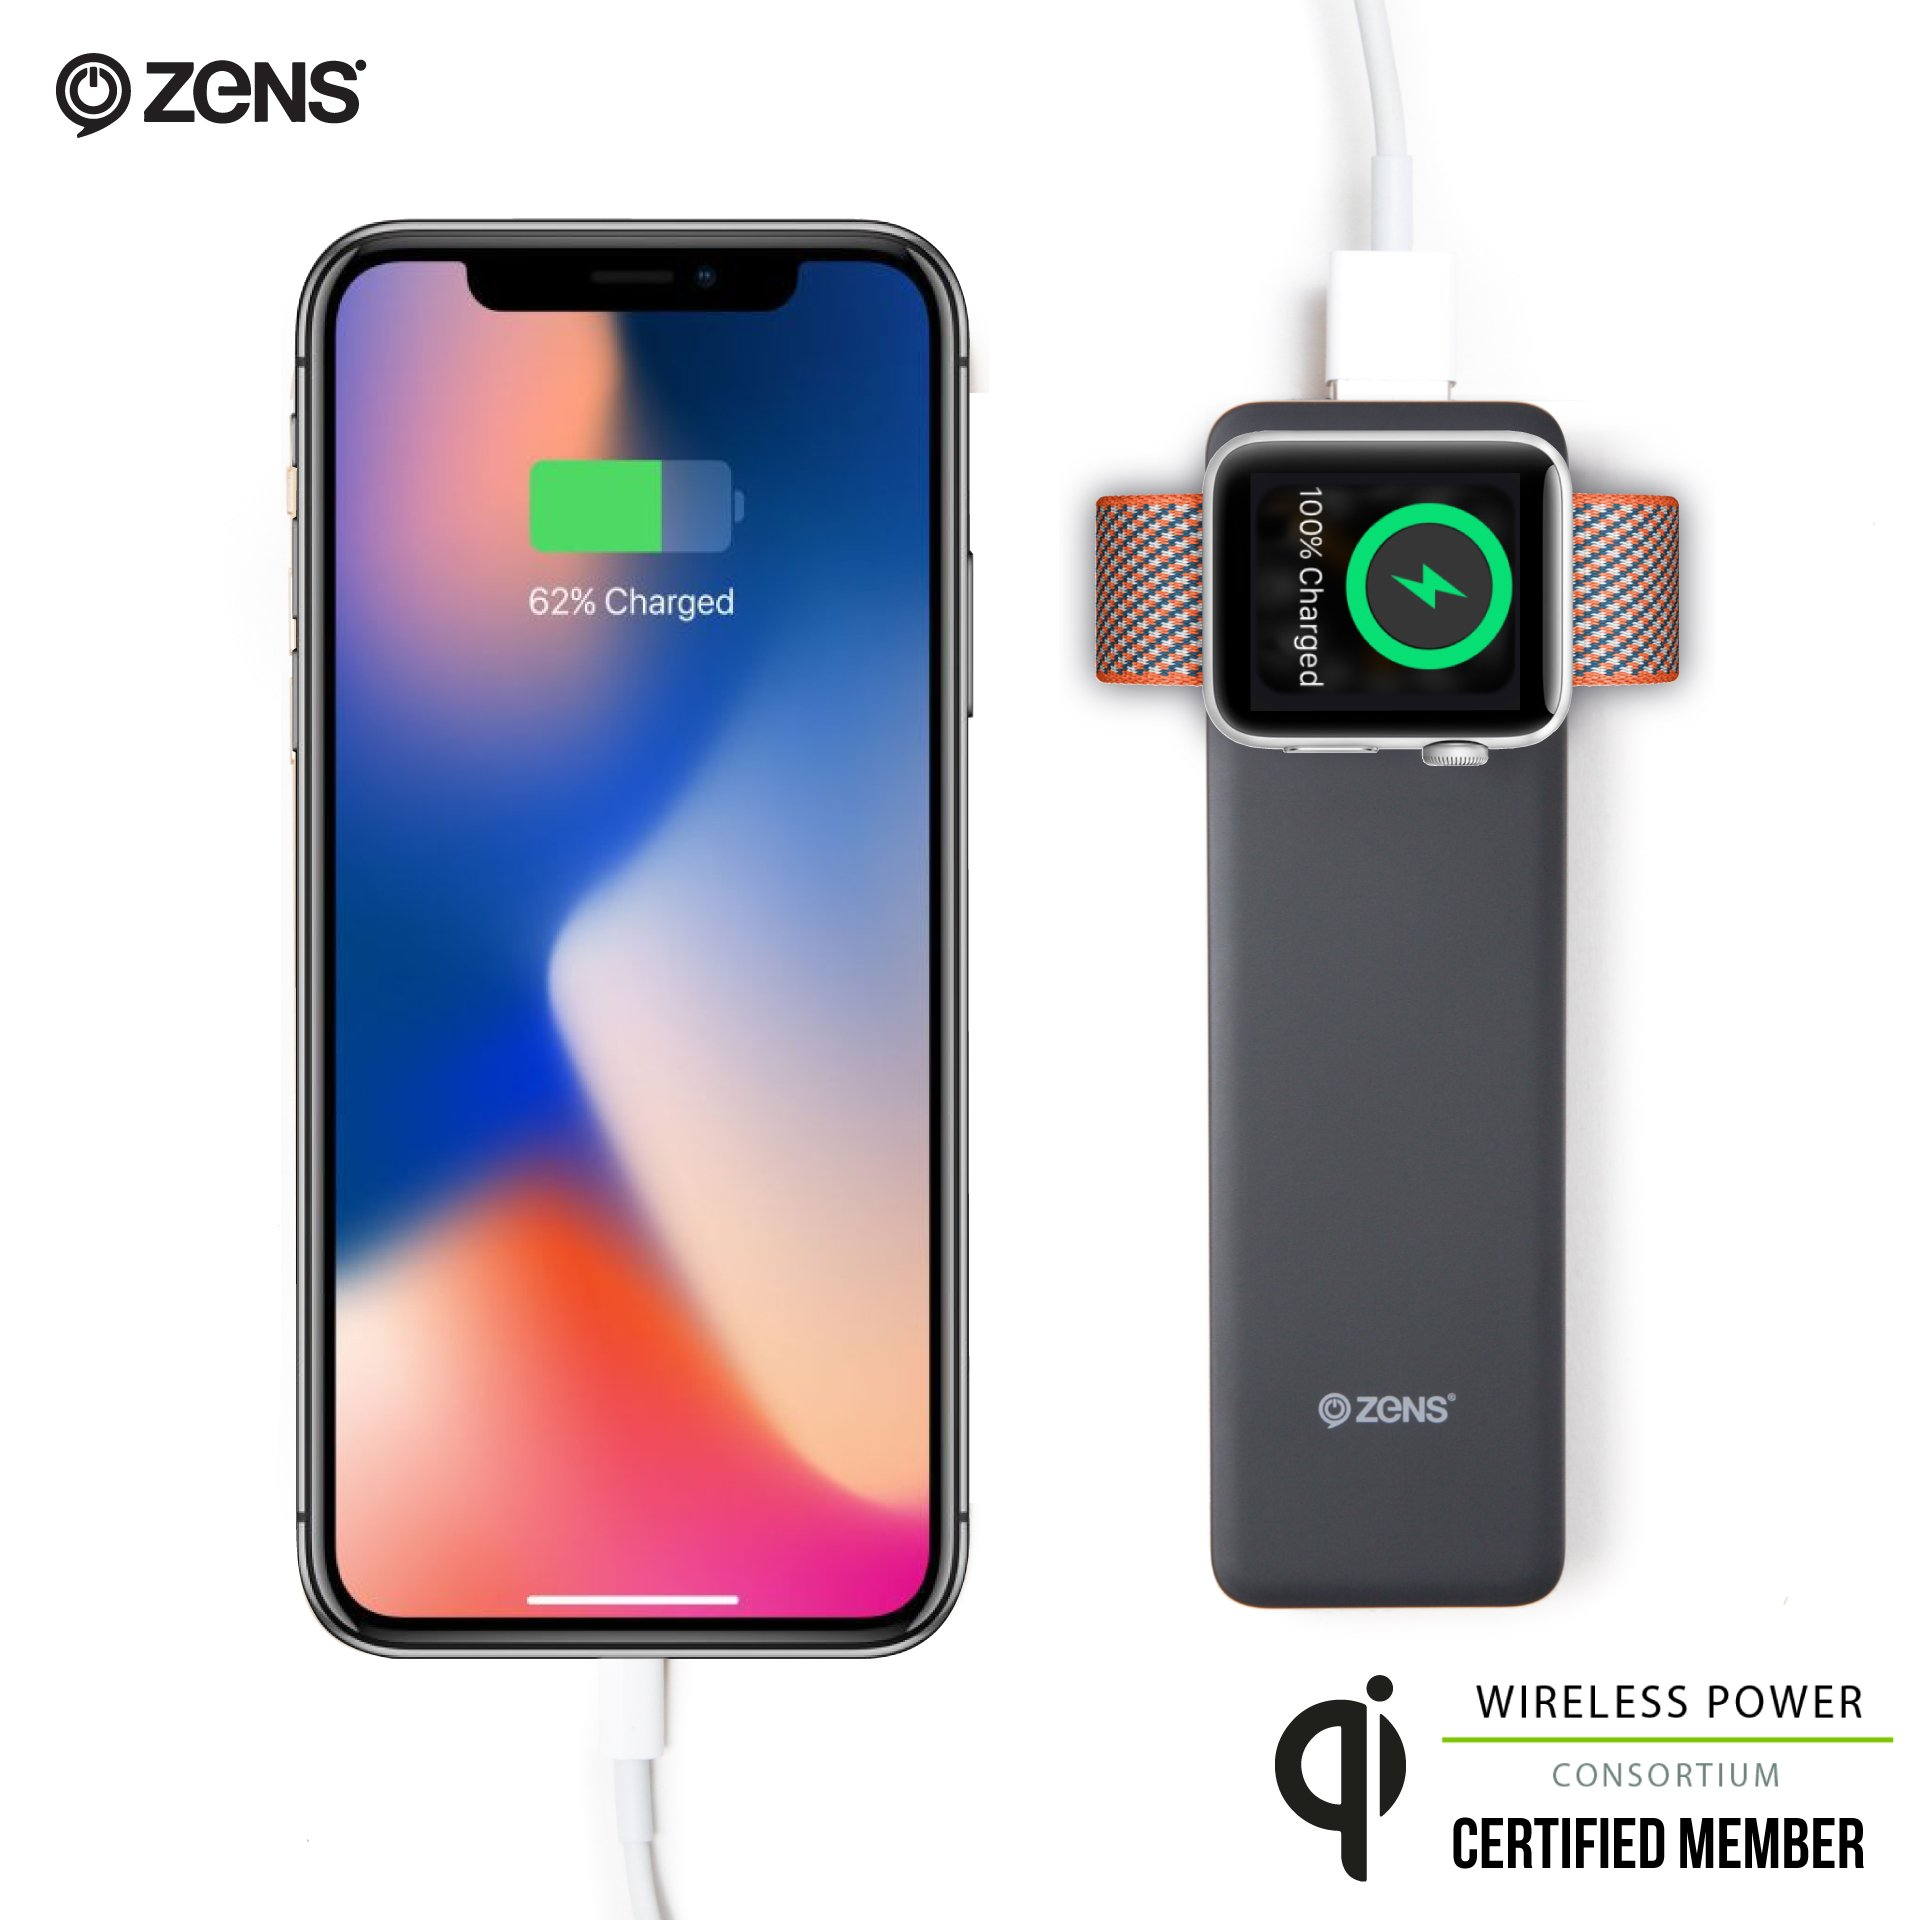 Wireless Apple Watch Charger w/Integrated 4000 mAh Power Bank by ZENS | Works w/Apple Watch Series 3 | Allows for Simultaneous Wired Smartphone Charging including iPhone 8/8+/X | Apple MFi Certified